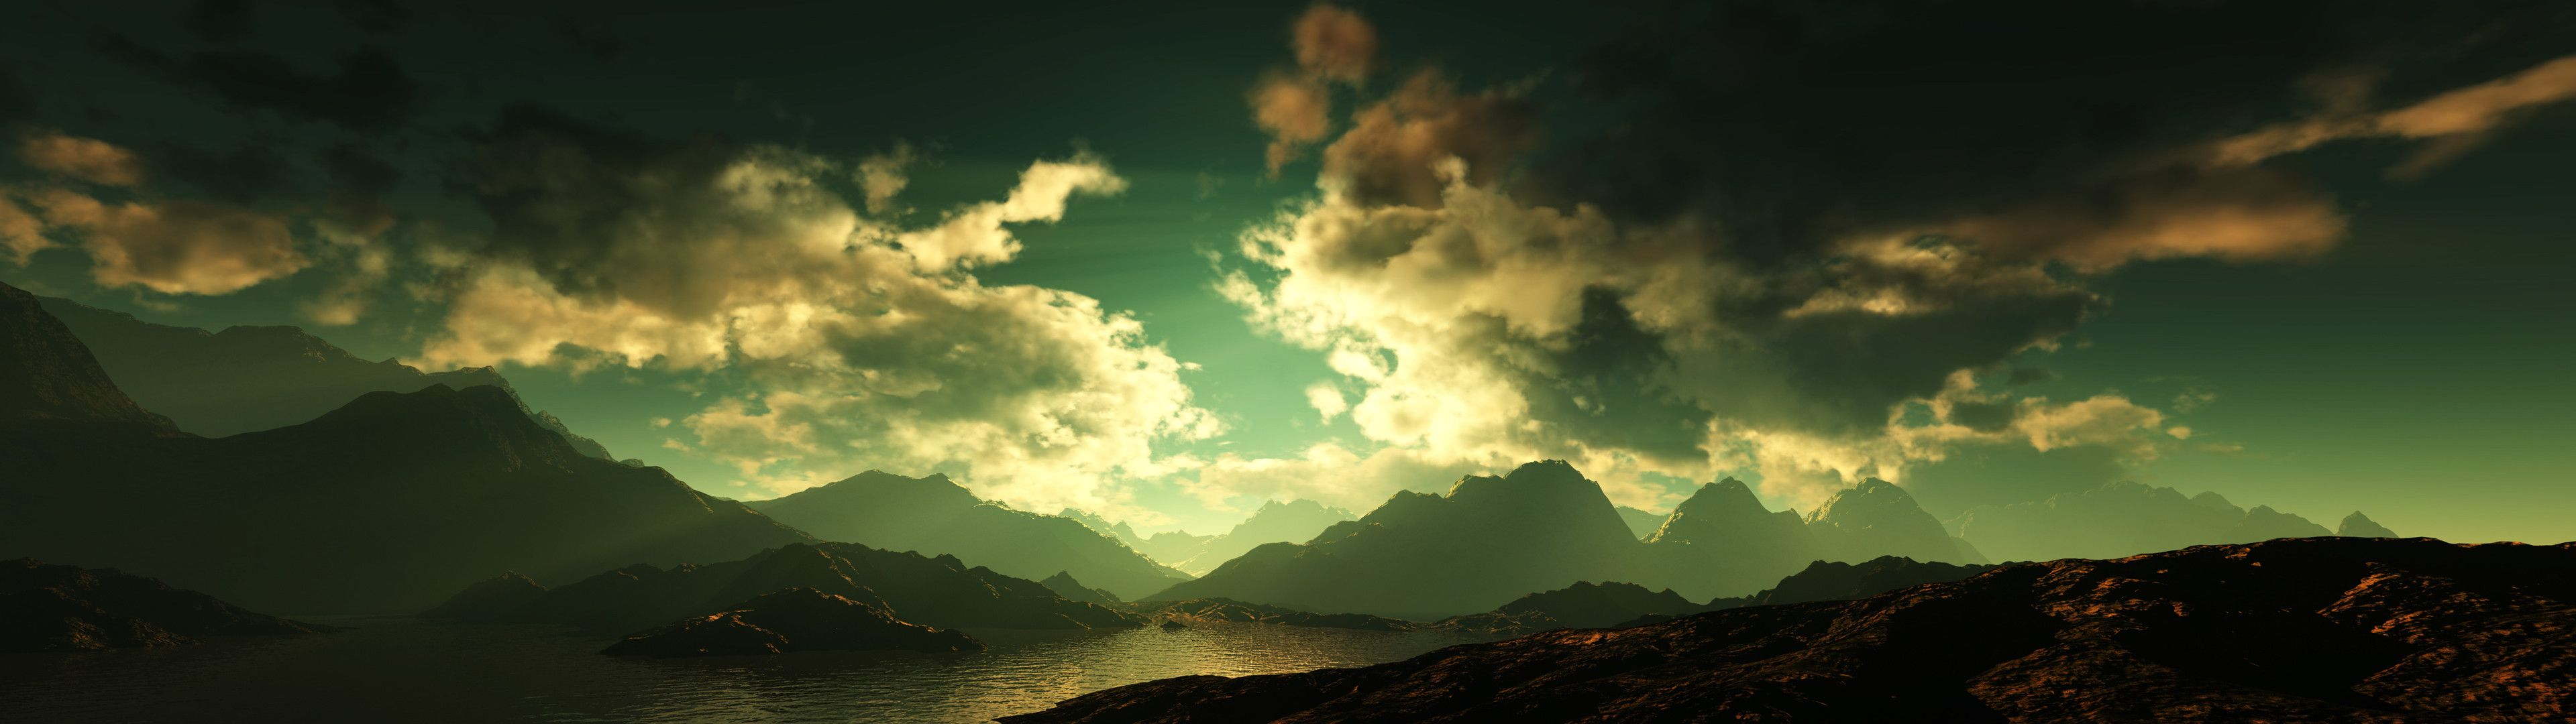 "3840x1080 Mountains Dual Monitor wallpapers""> · Download · 3360x1050 ..."